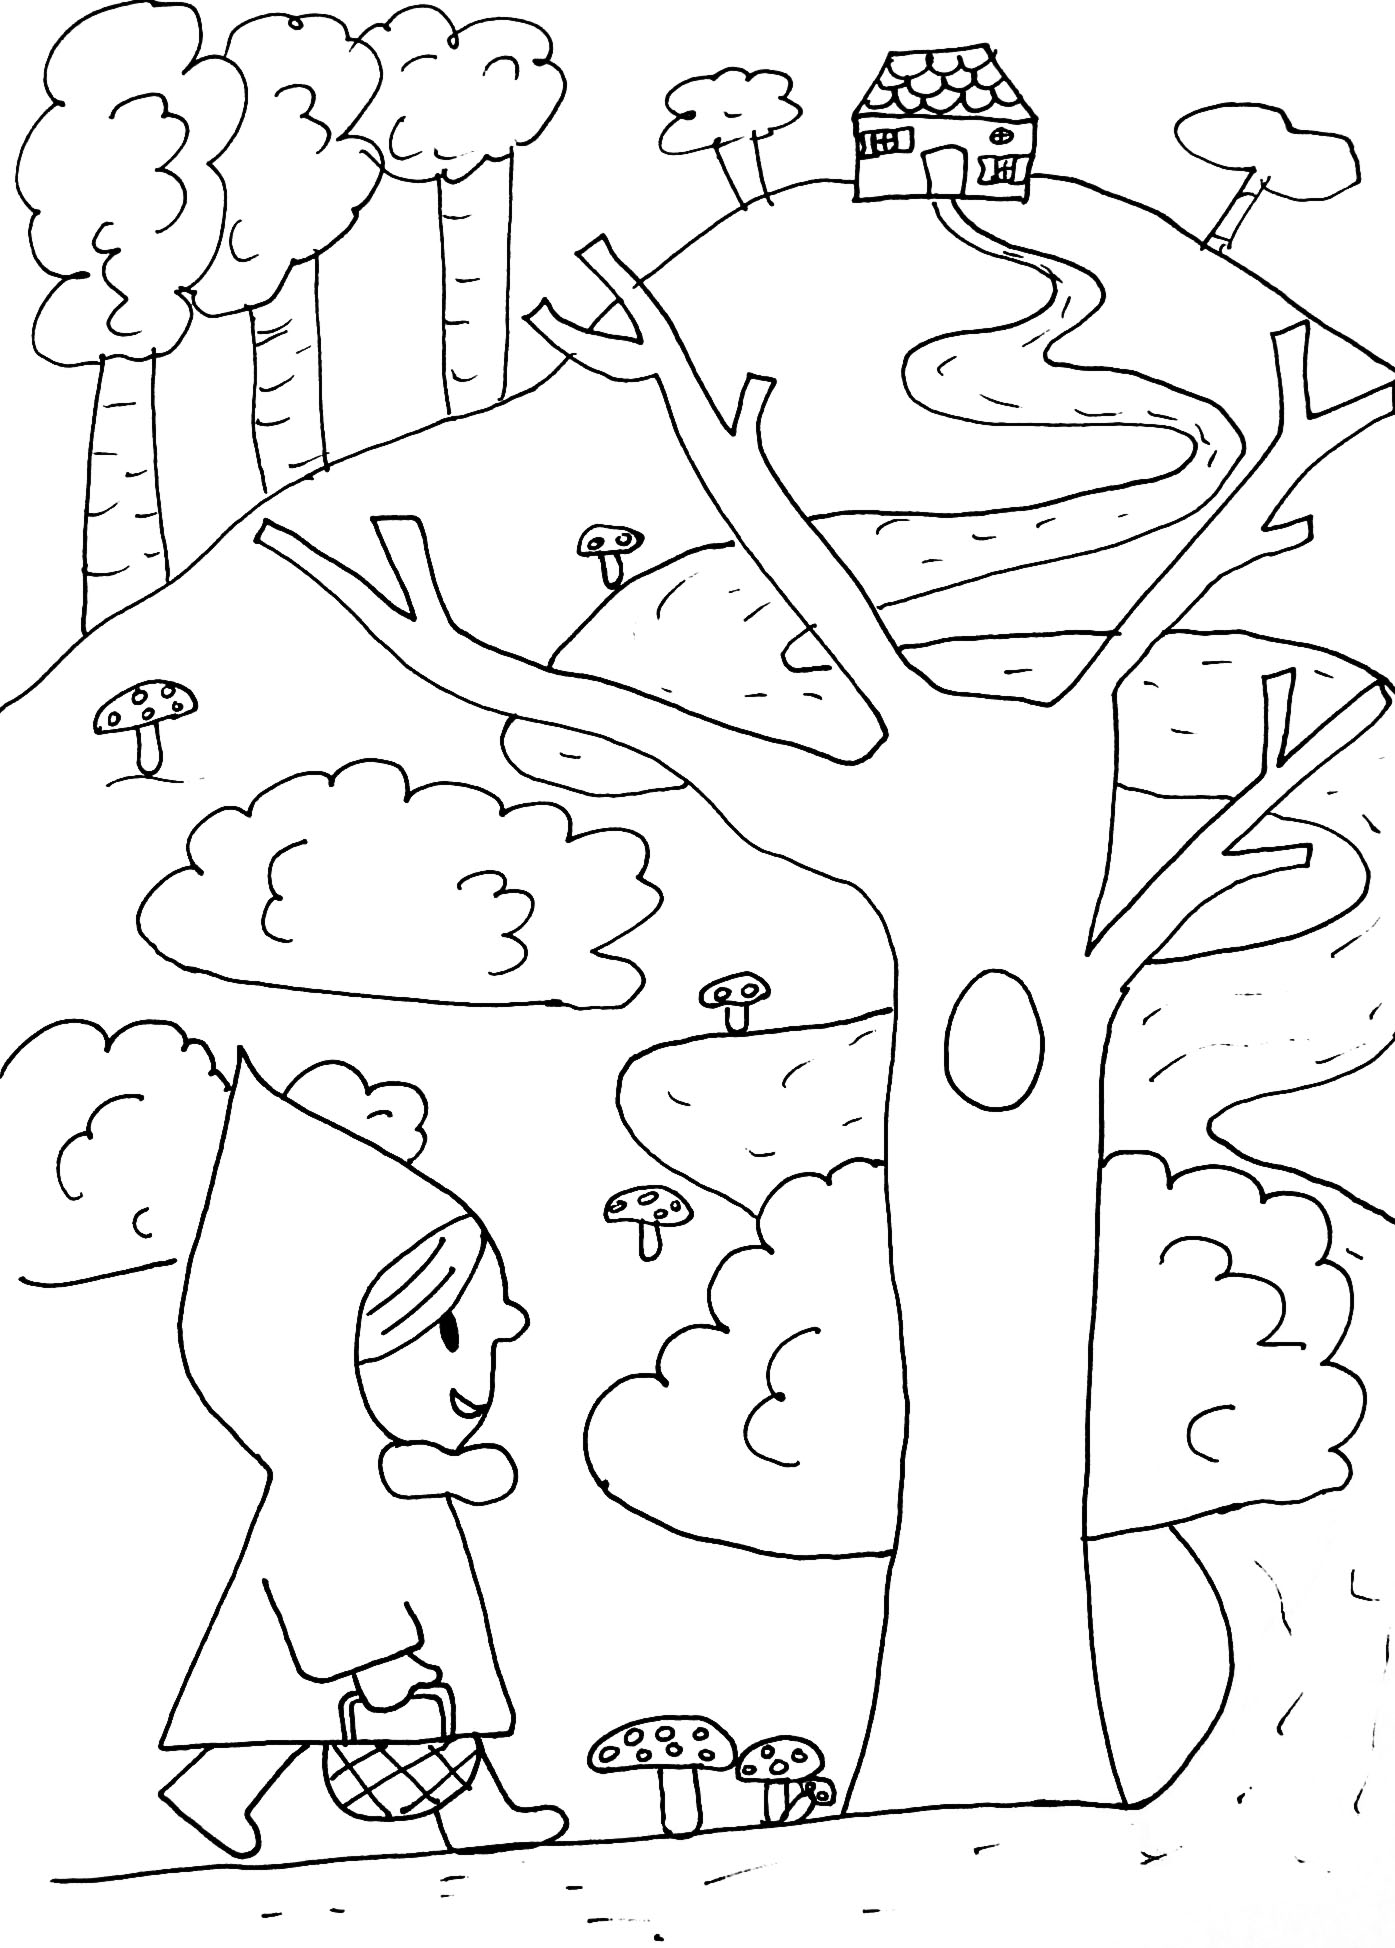 Printable Tales coloring page to print and color for free